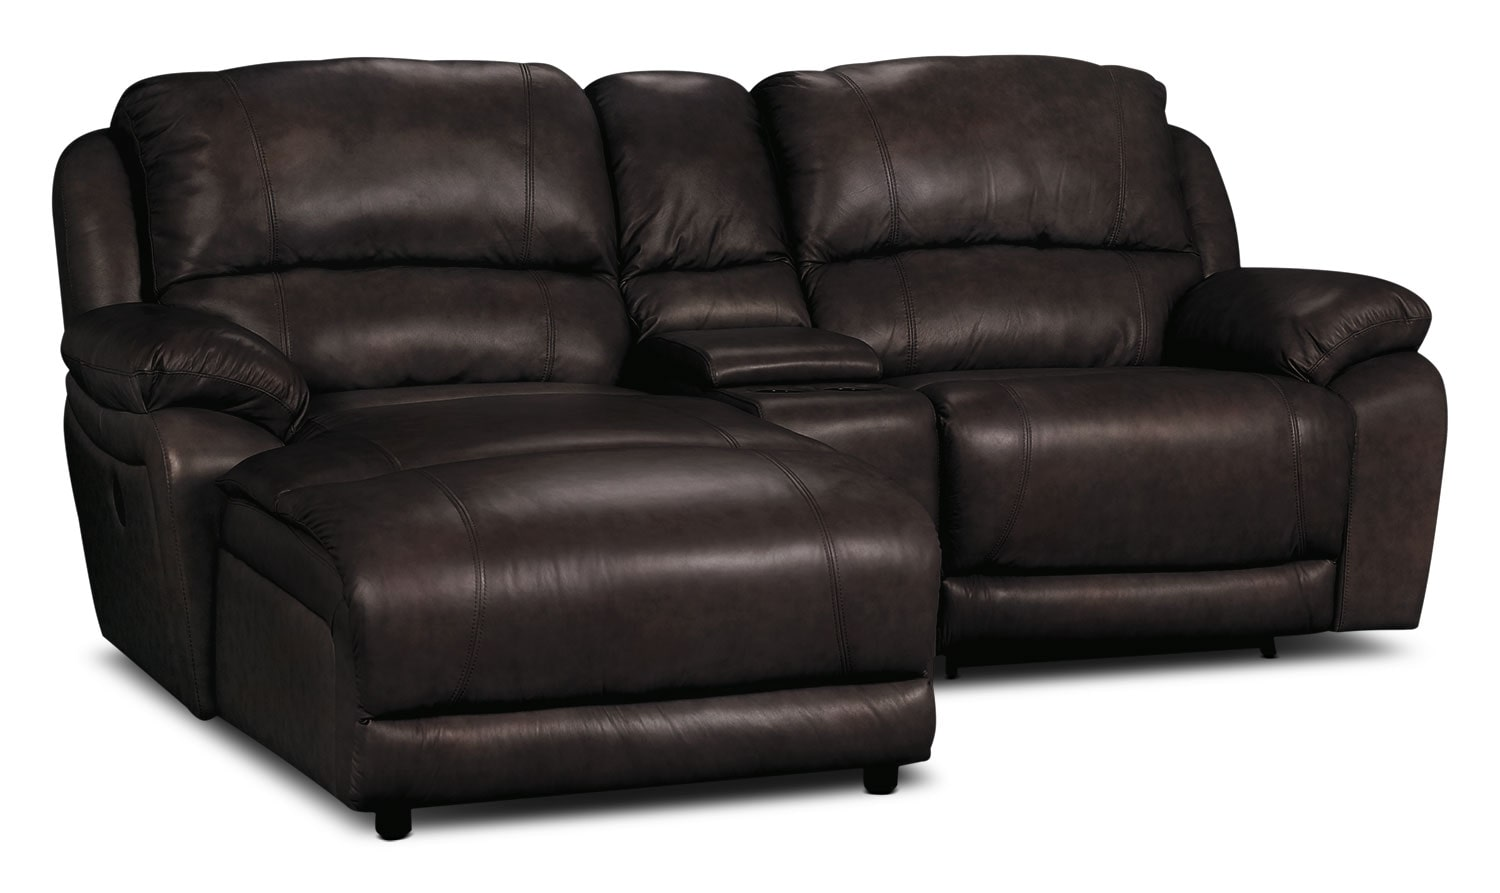 Living Room Furniture - Marco Genuine Leather 3-Piece Sectional with Chaise, Power Recliner, and Console– Chocolate